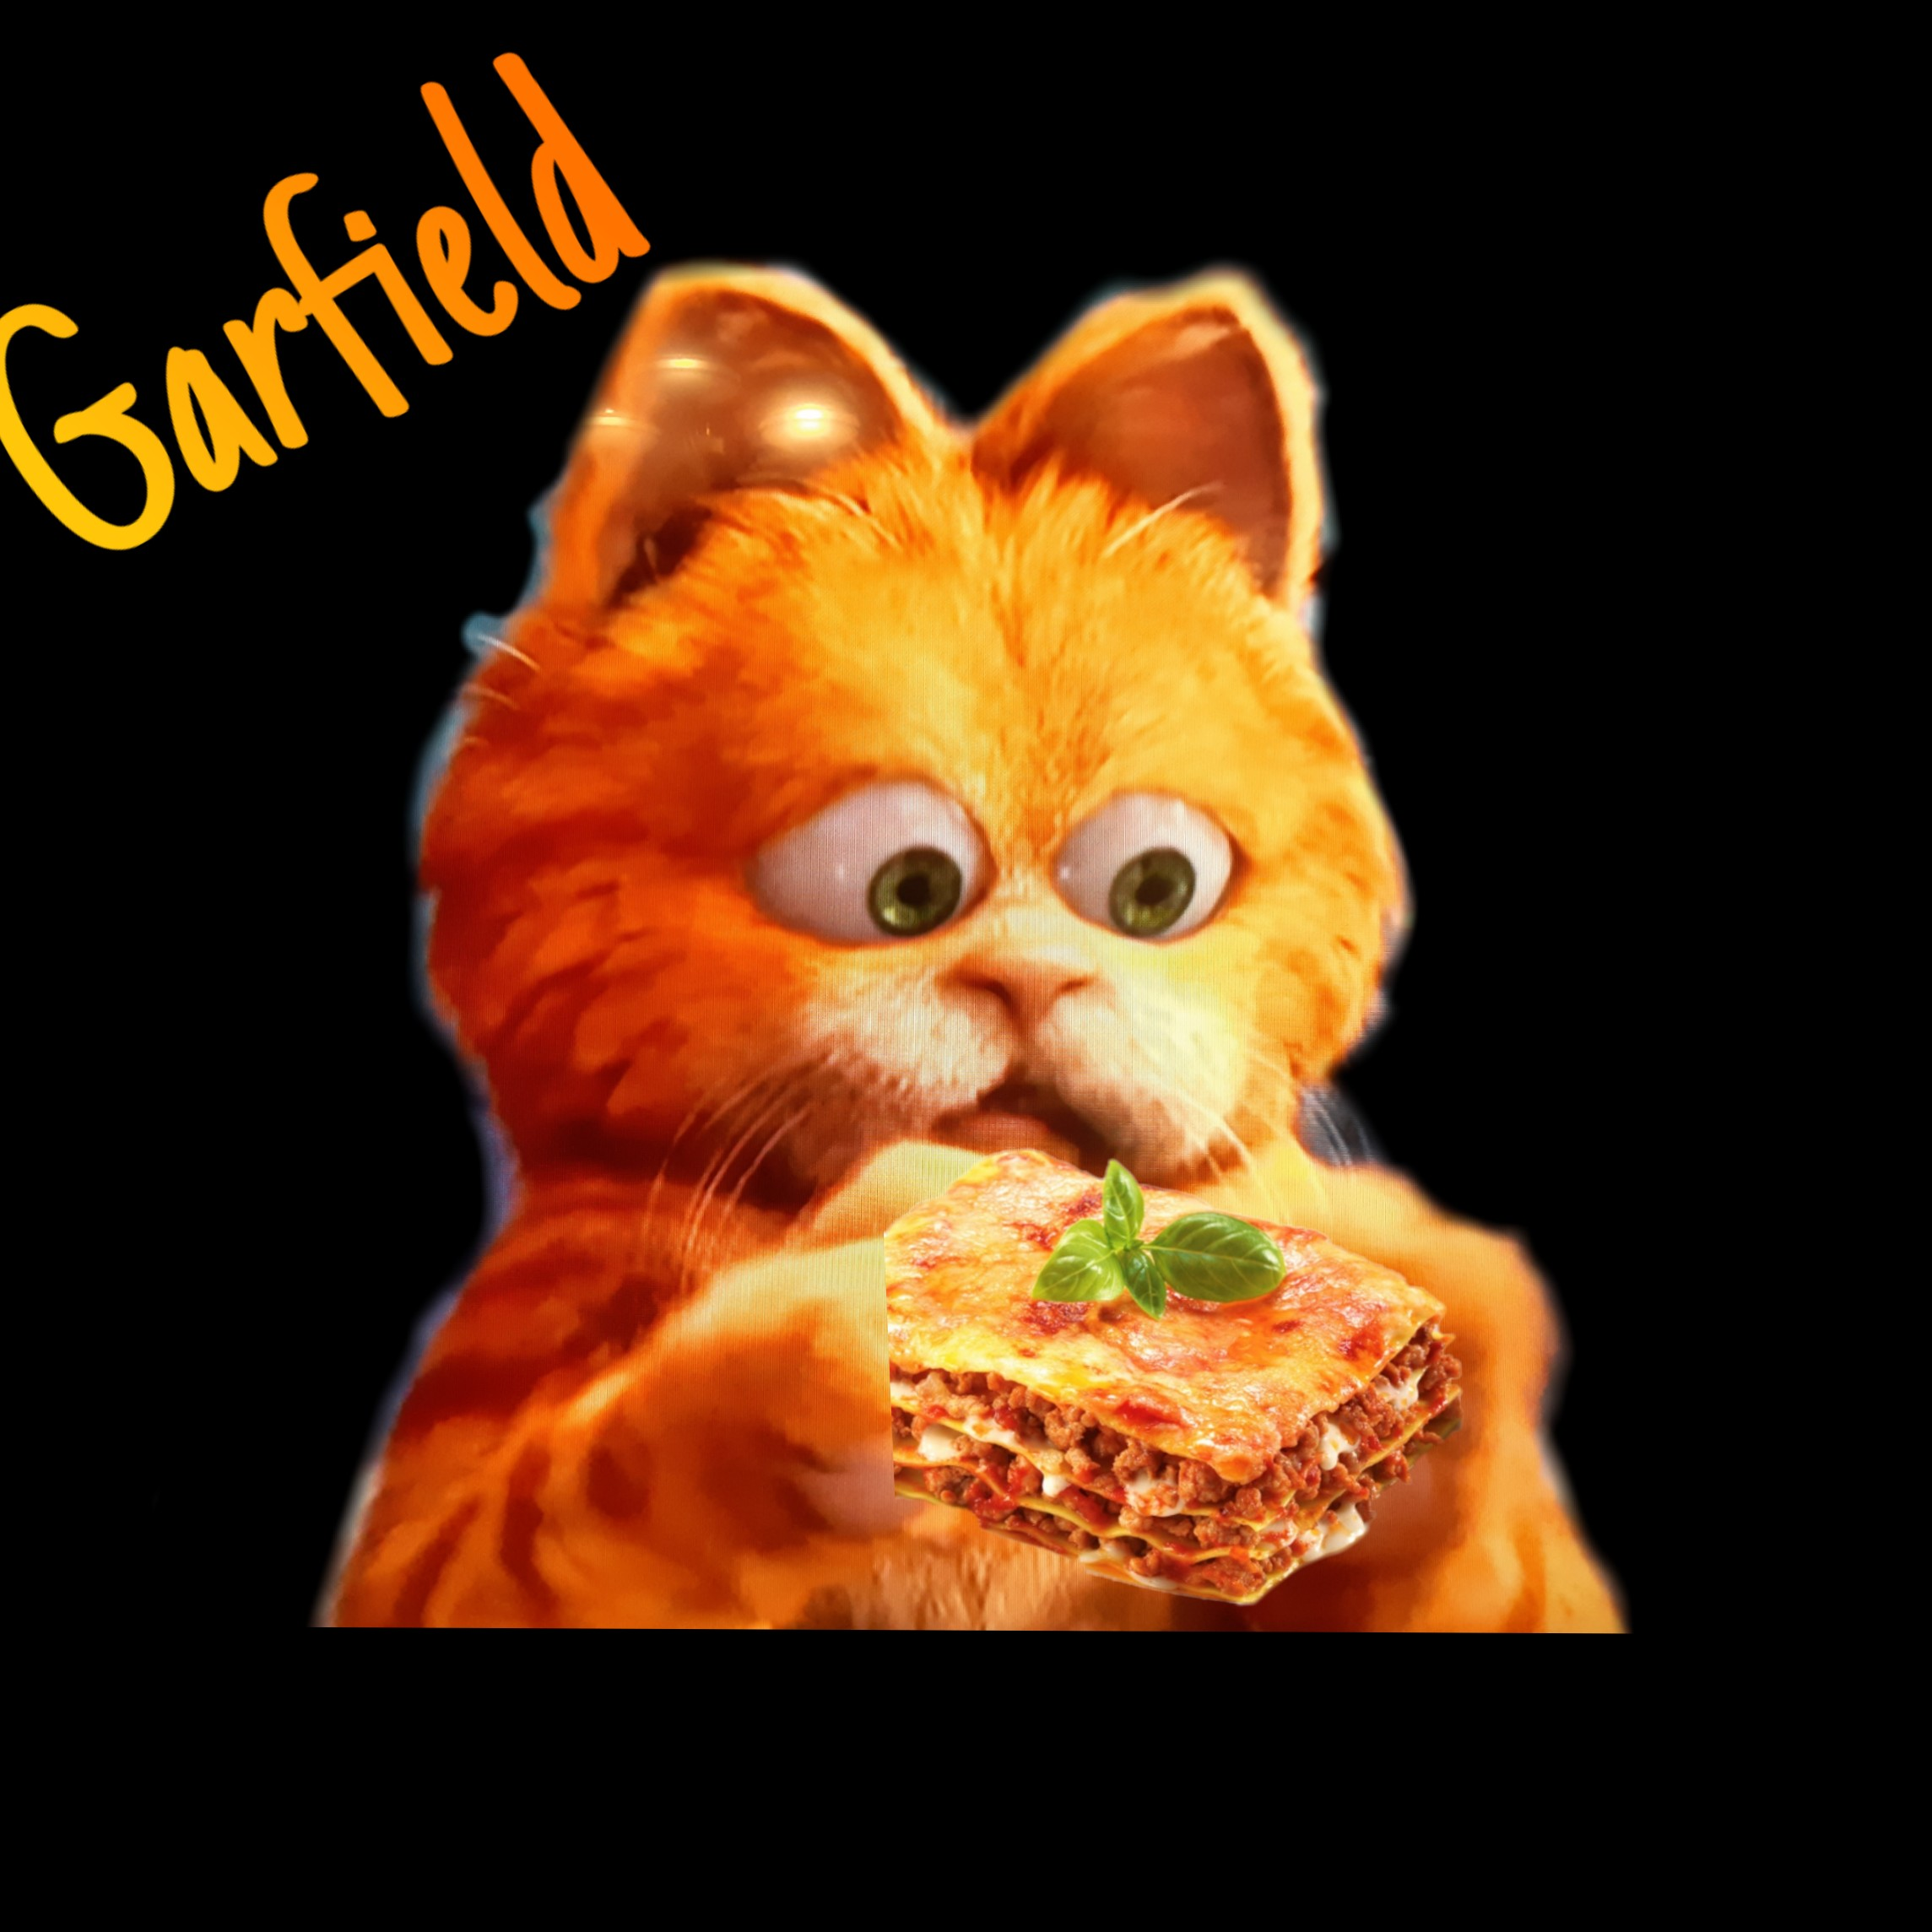 Garfield Lasagna Cat Image By Carrot Junior